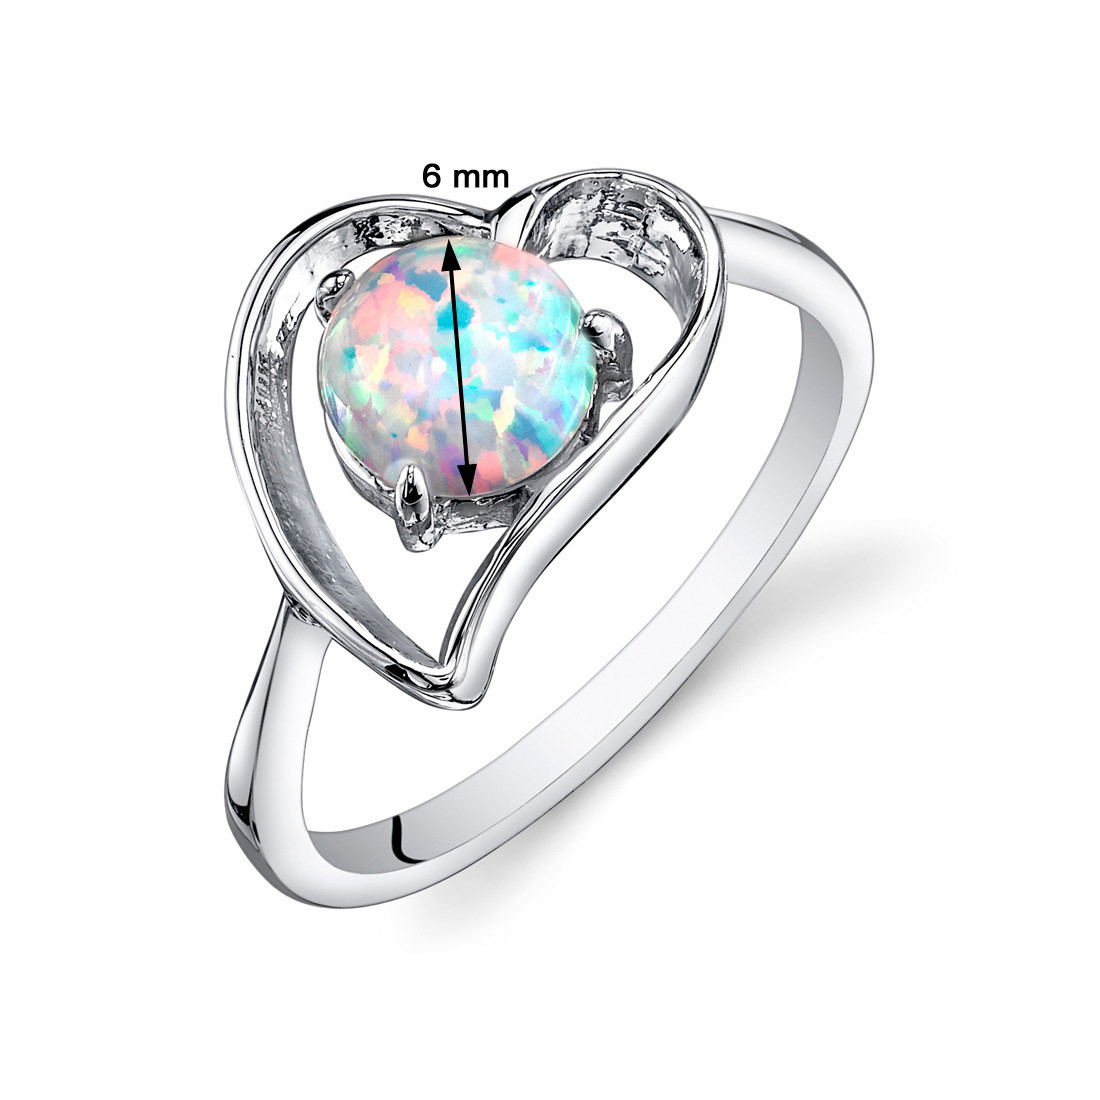 19dc8cd045a18 Opal Ring Sterling Silver Heart Design 0.75 Cts Sizes 5 to 9 SR11144